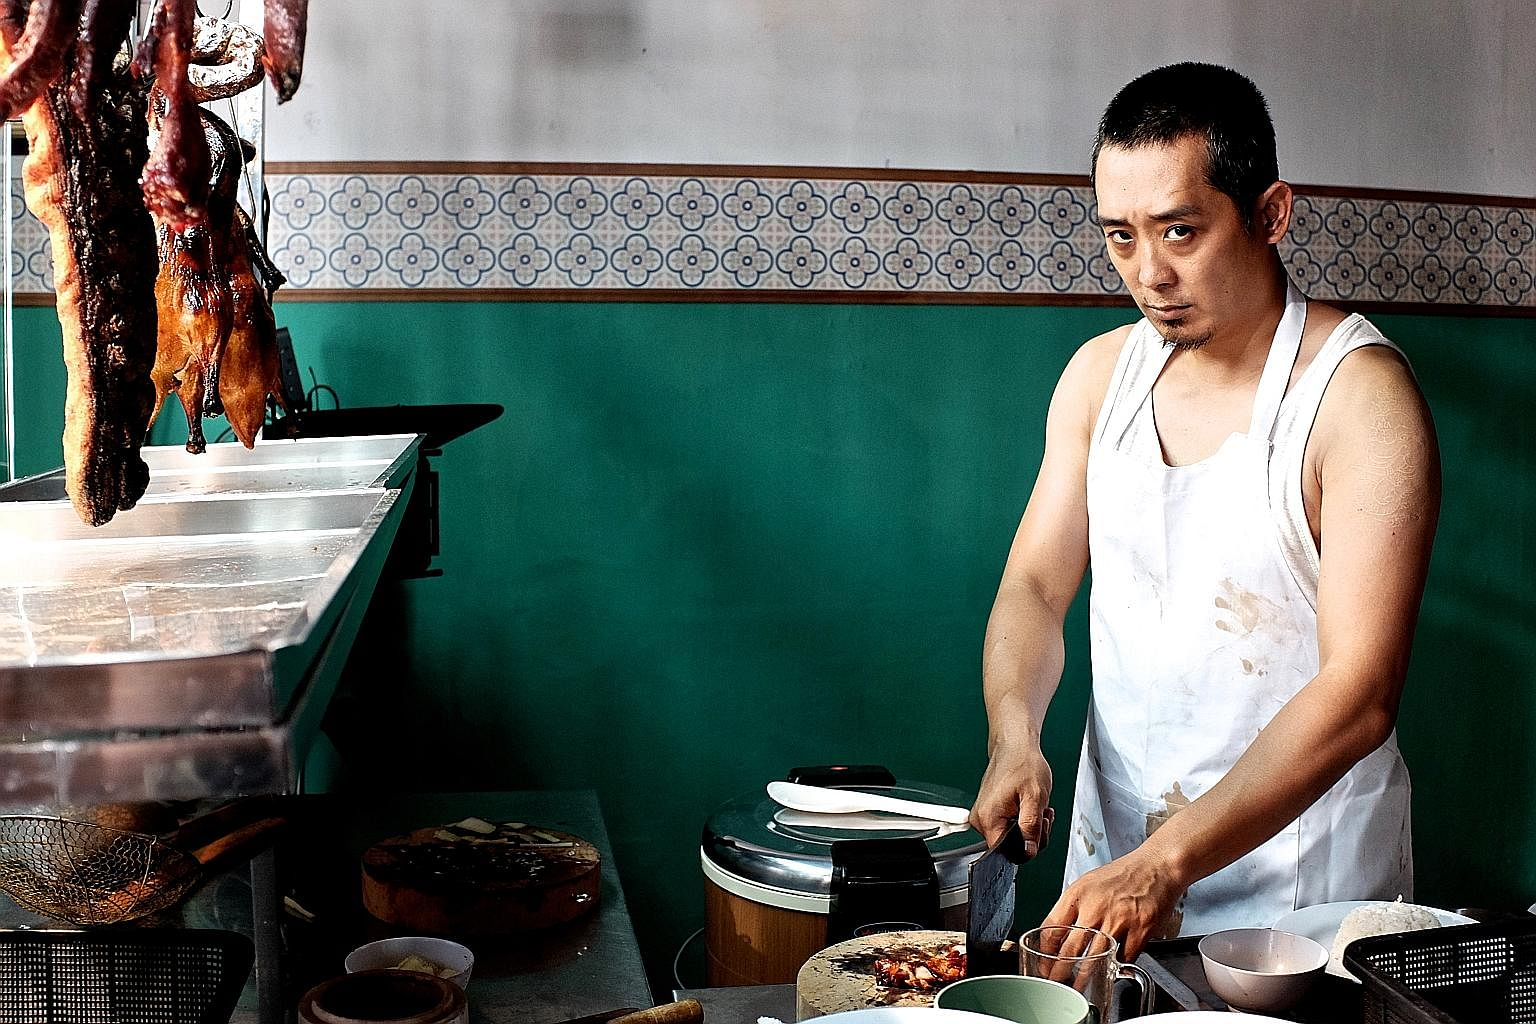 Roast pork seller Quan (Sunny Pang) grapples with an unhappy wife in Siew Lup.